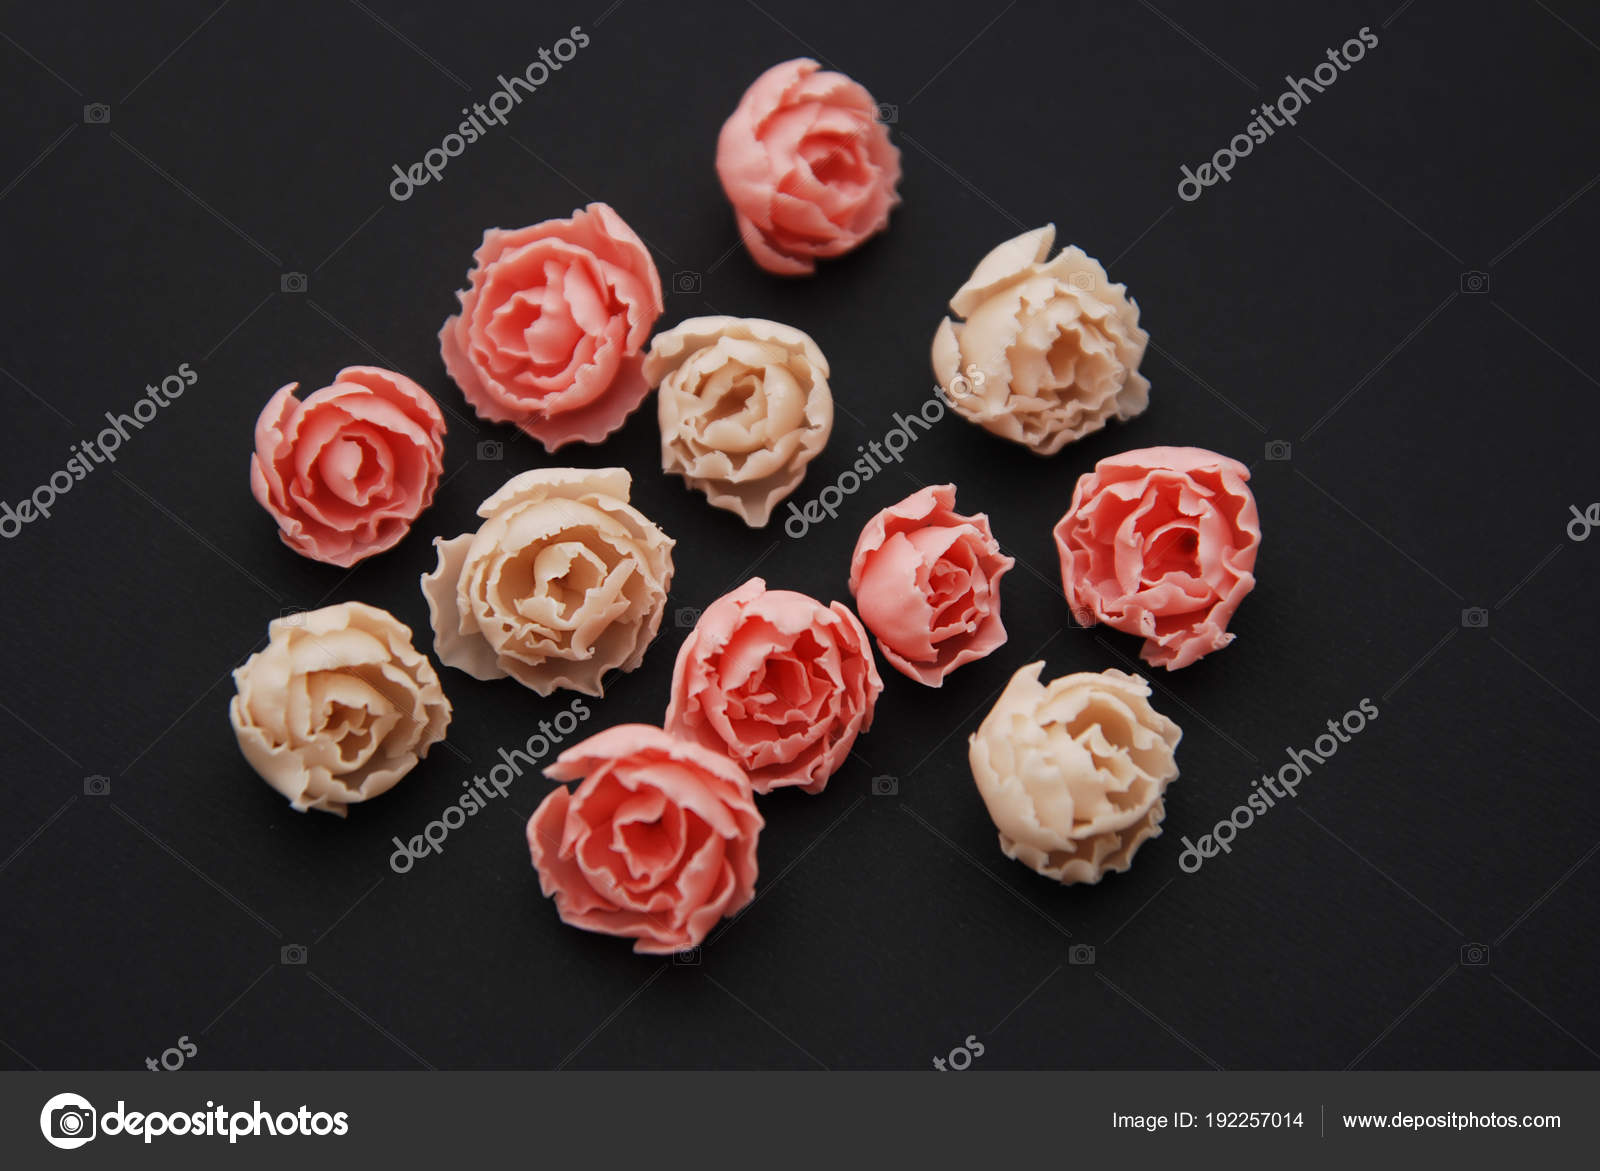 Pink Fake Rosess Black Background Lot Of Artificial Pink Peach